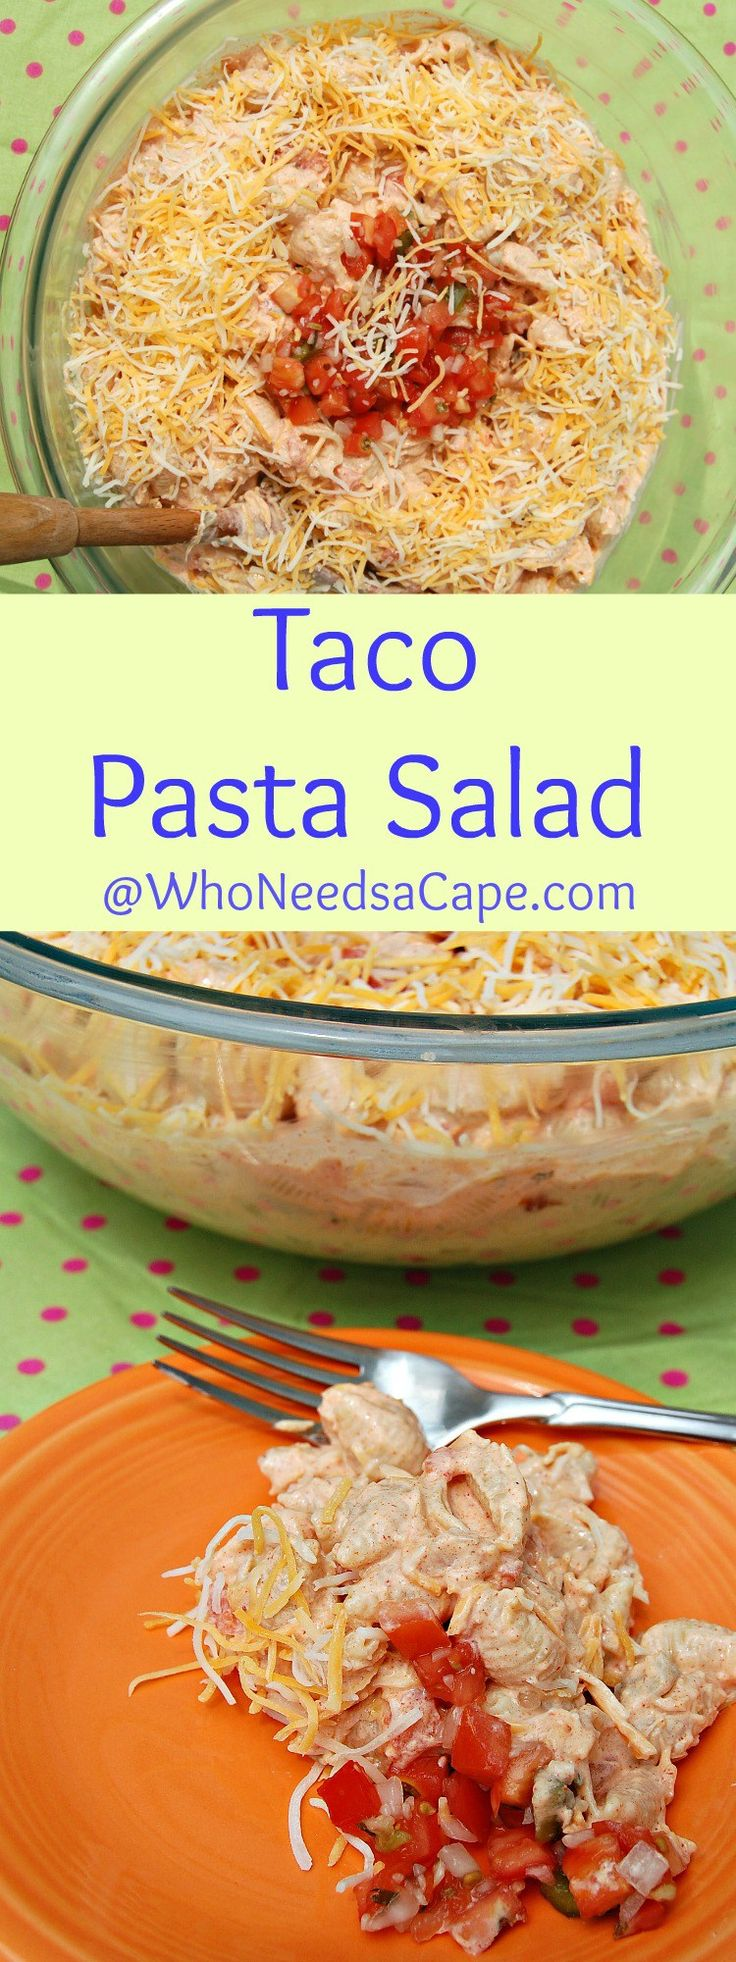 Taco Pasta Salad is a really fun twist on Pasta Salad! Have Taco night in a whole new way! Who Needs a Cape? {pinned over 2K times}